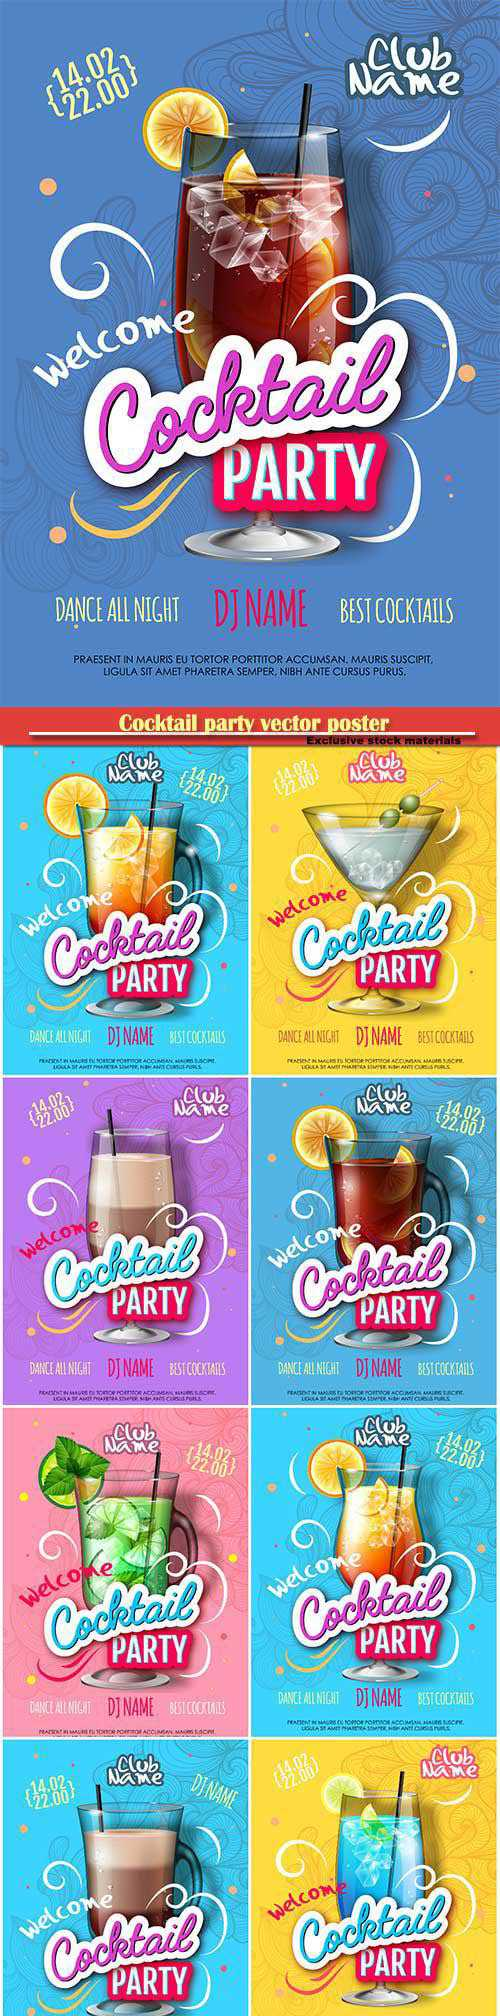 Cocktail party vector poster in eclectic modern style